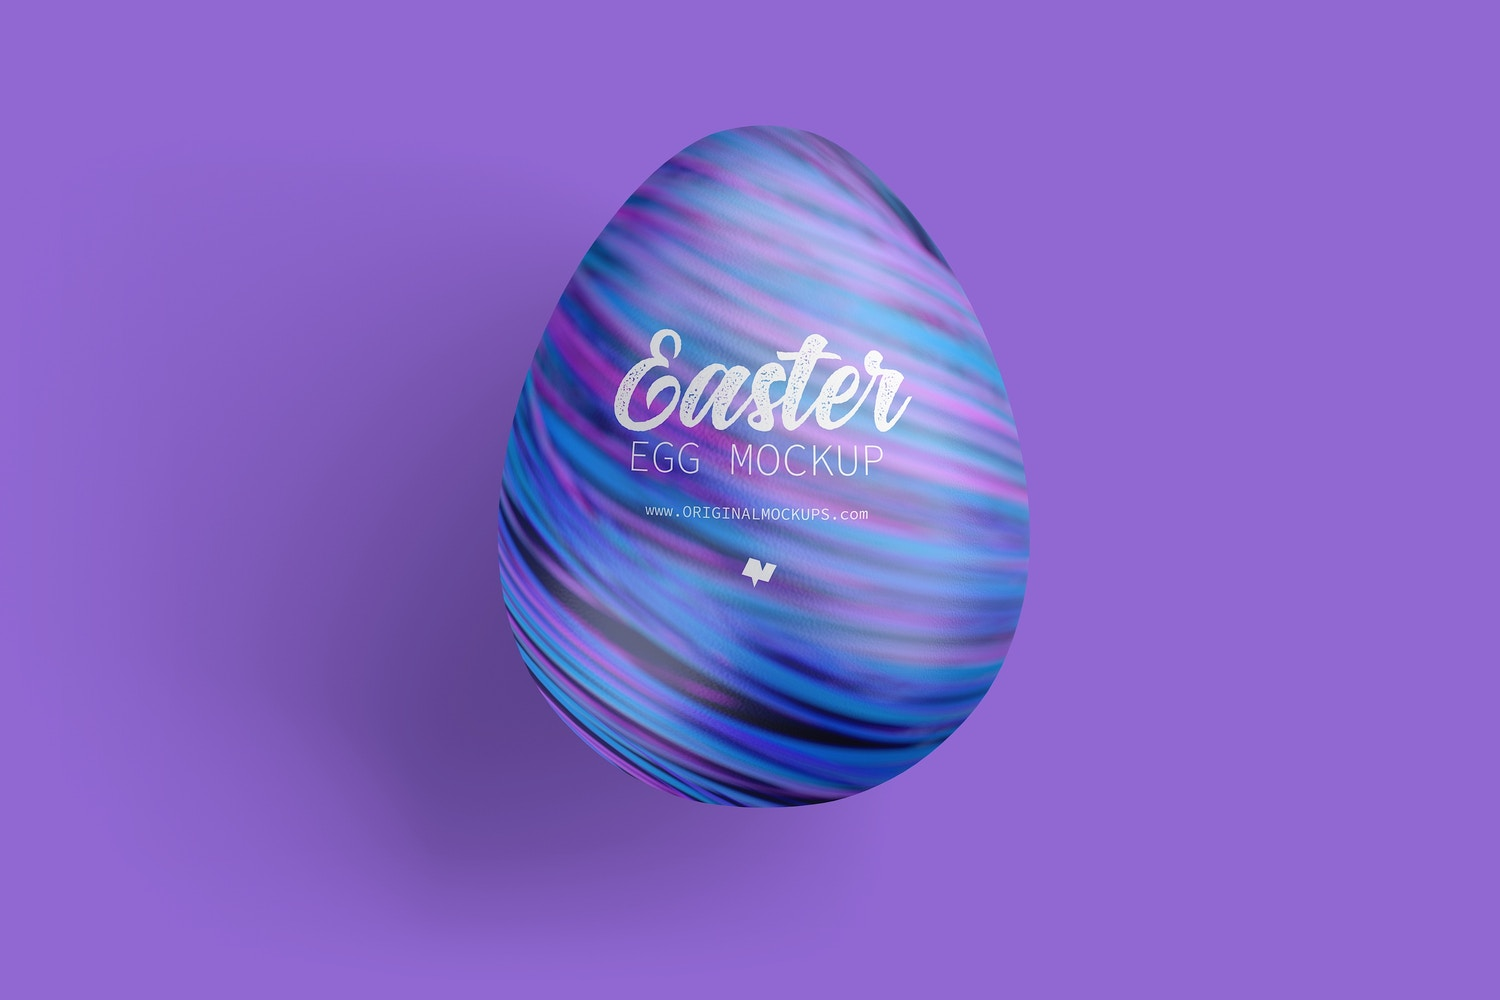 Easter Egg Mockup, Top View by Original Mockups on Original Mockups